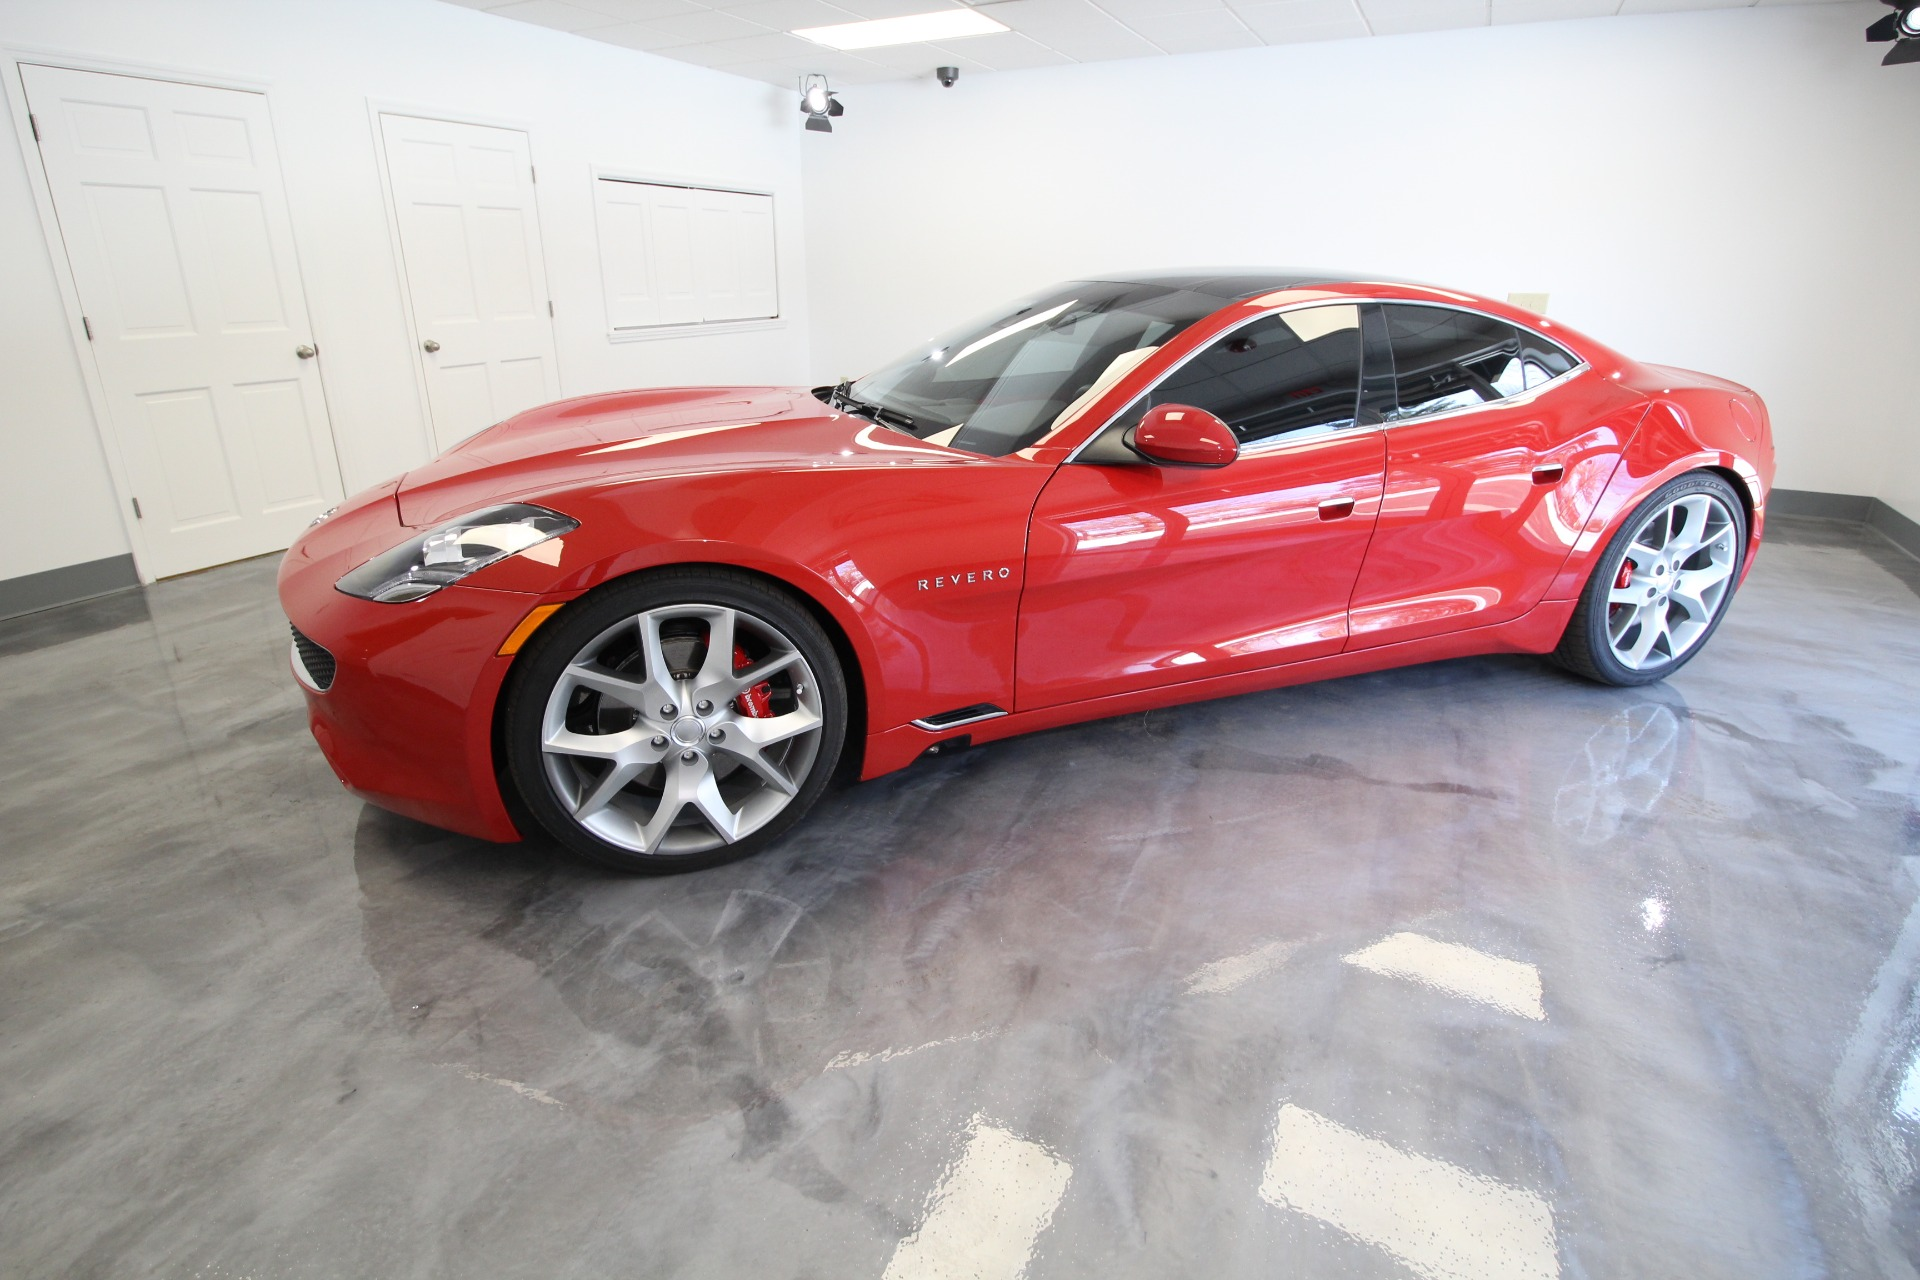 Used 2018 KARMA REVERO REVERO 1 OWNER LEASE TURN IN | Albany, NY